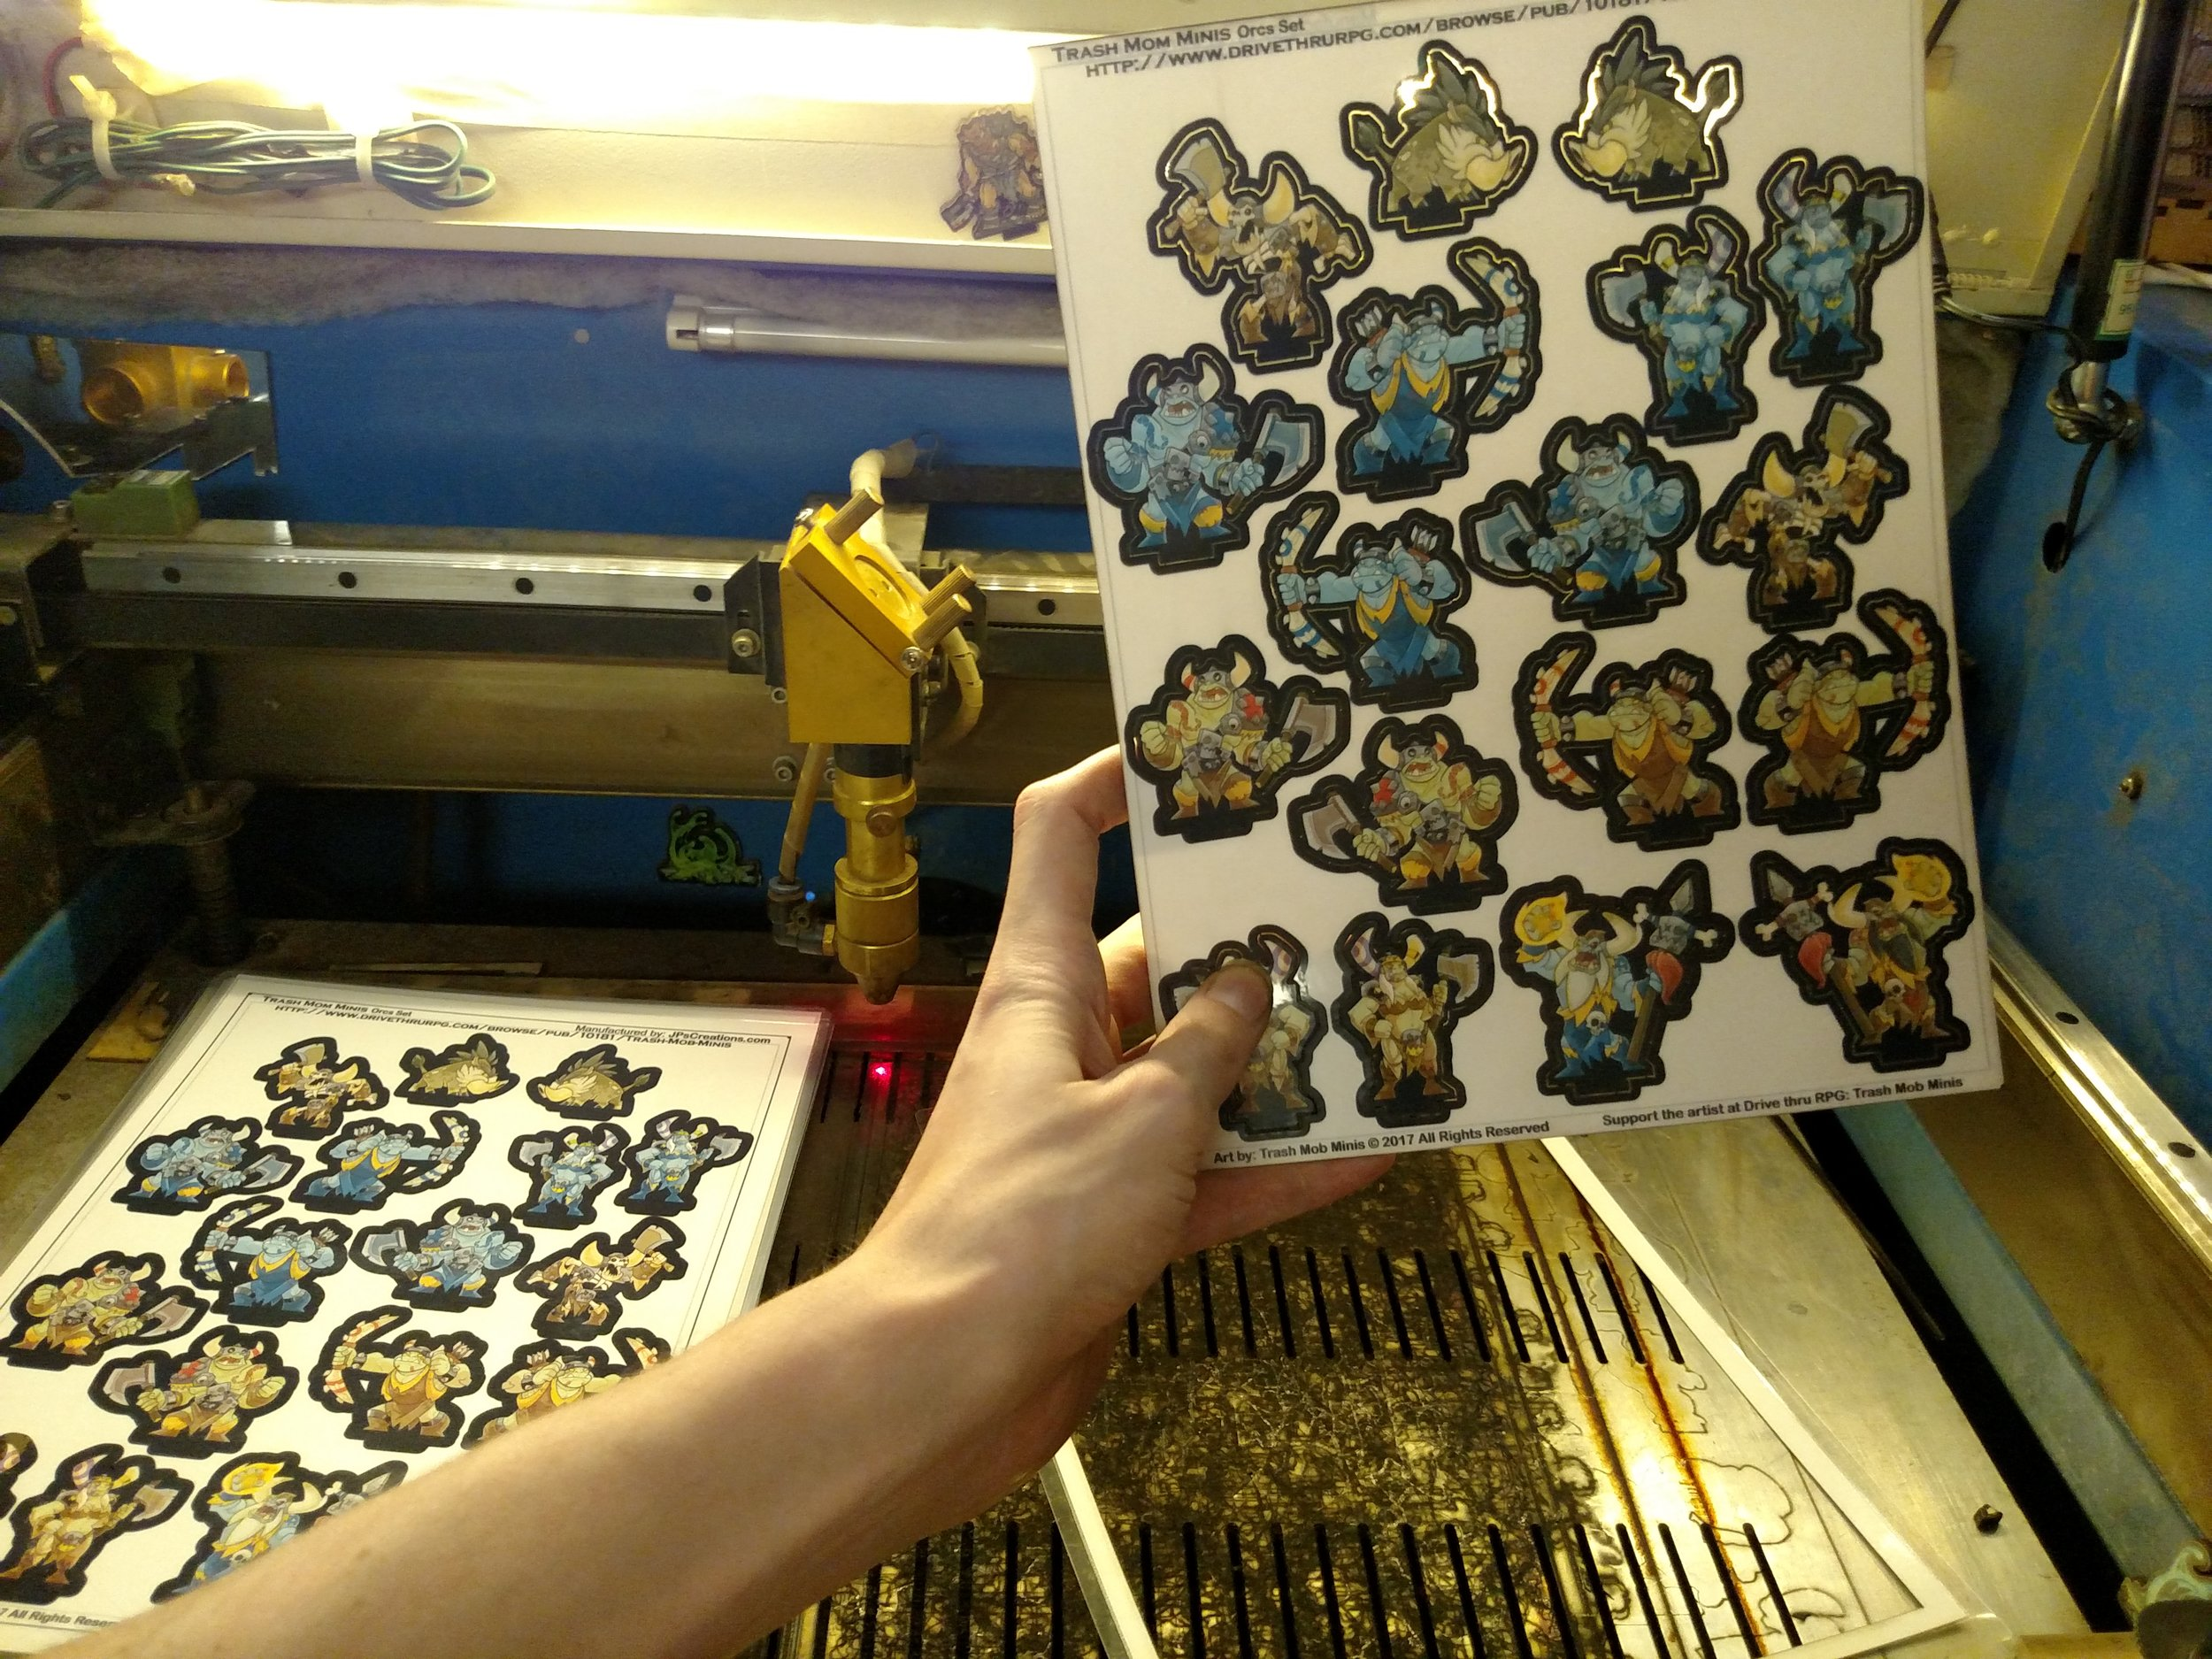 Then it's too the laser cutter